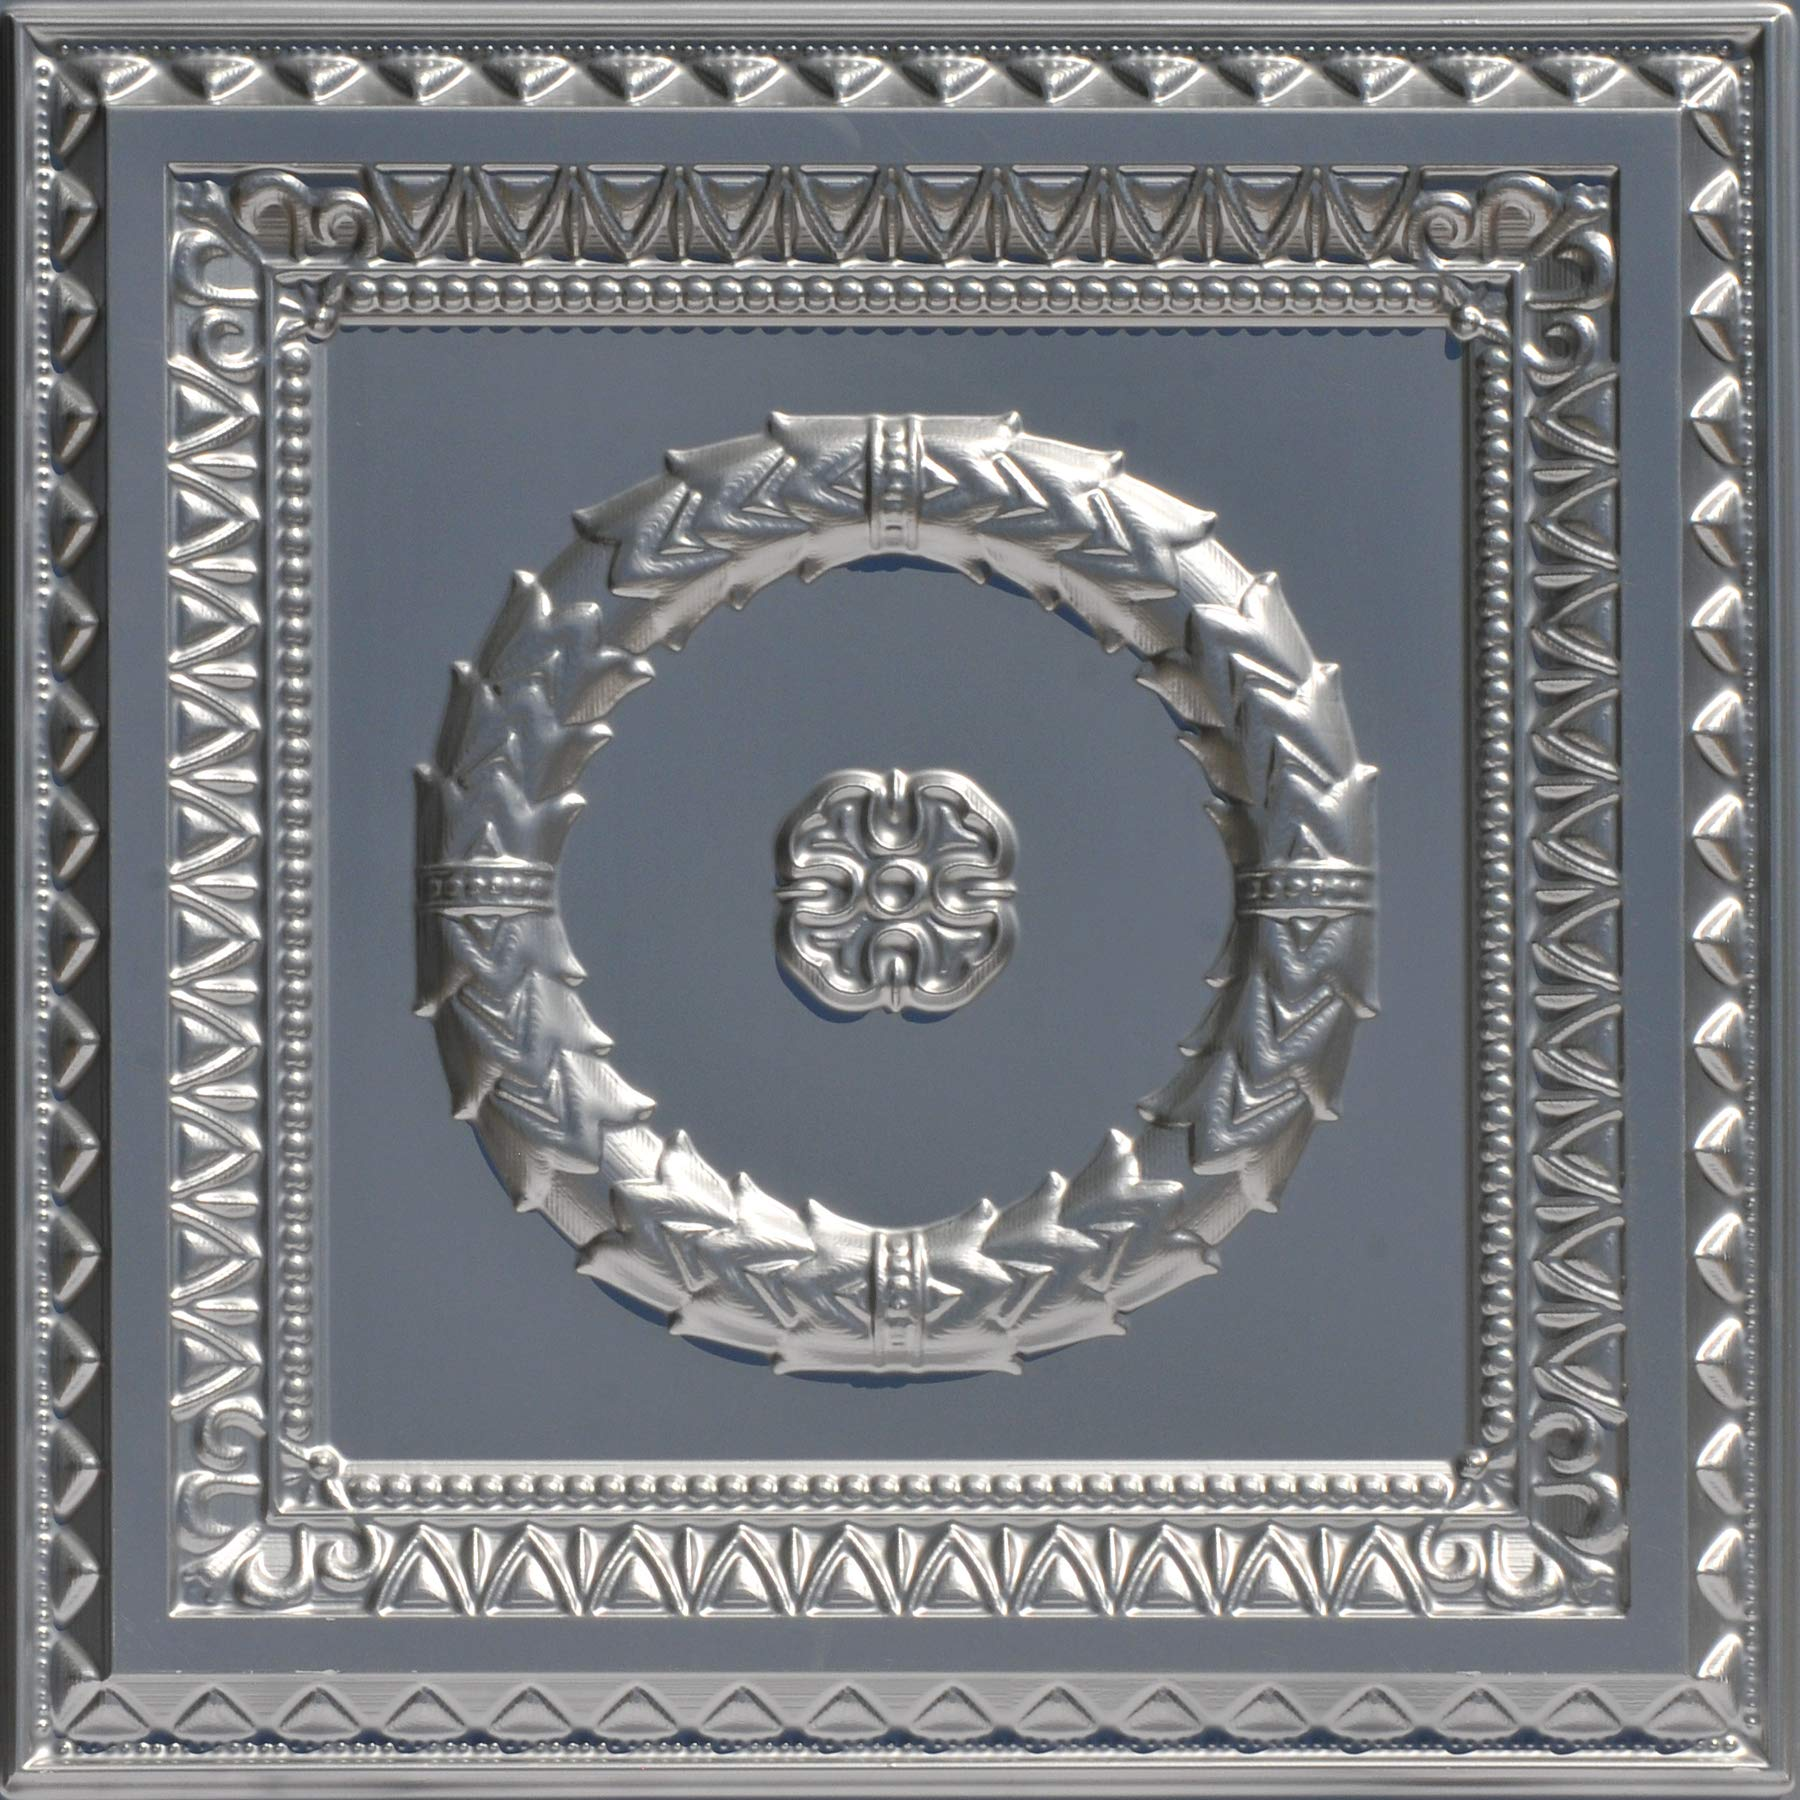 From Plain To Beautiful In Hours 210sr-24x24-25 Laurel Wreath Ceiling Tile 24'' x 24'' Silver 25